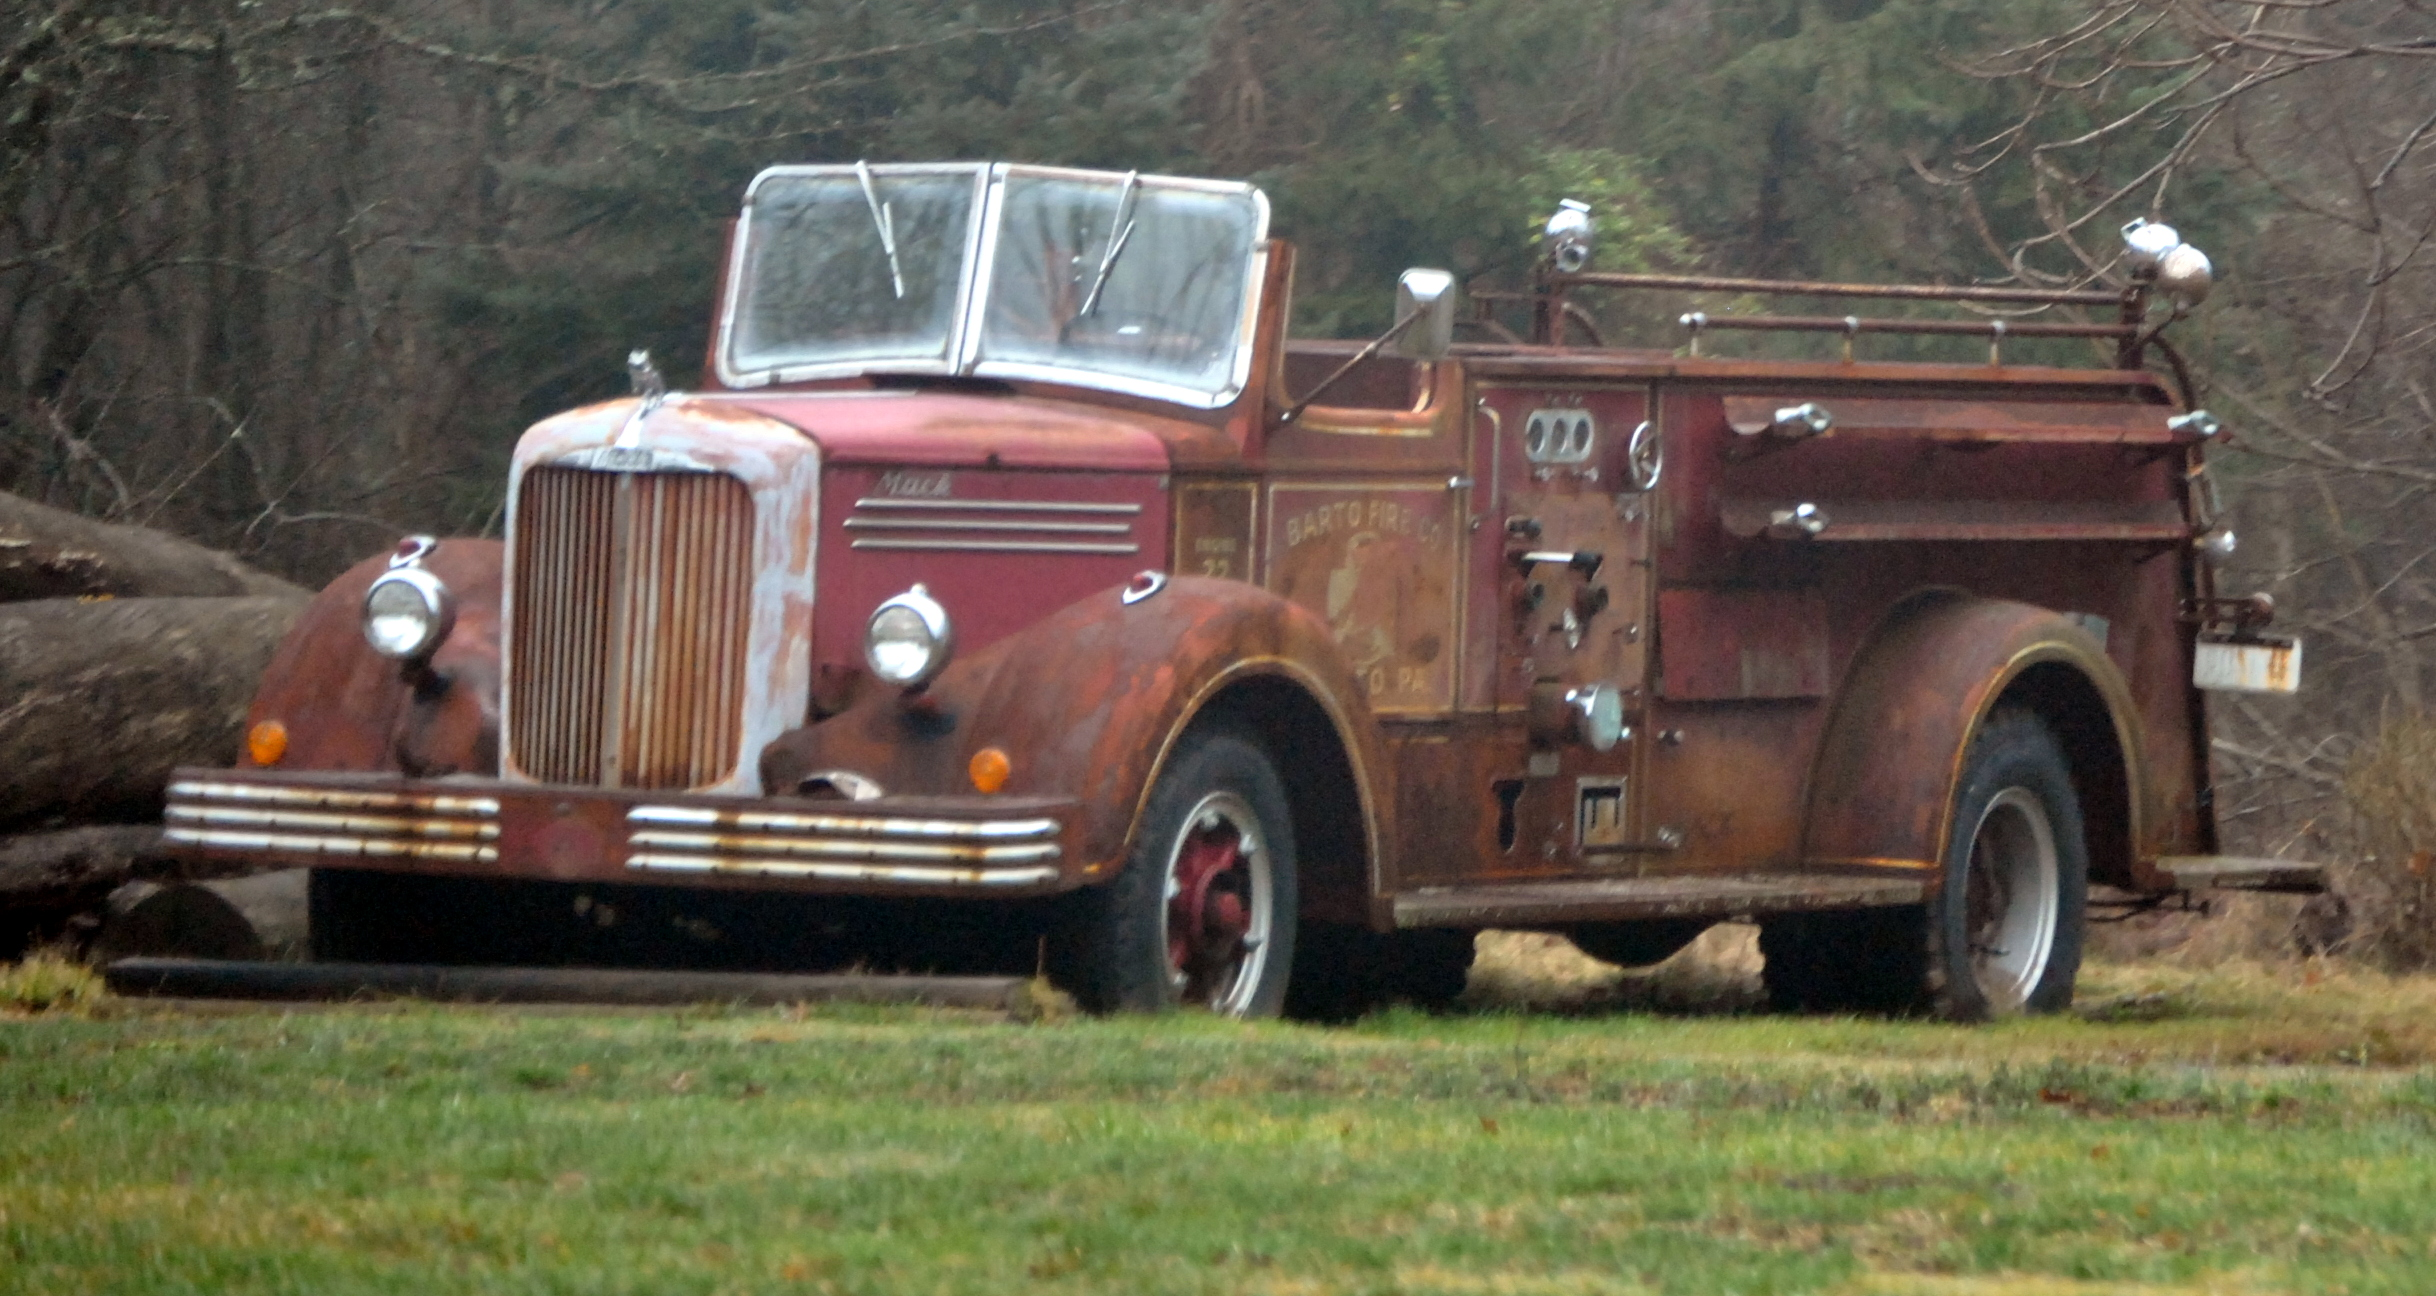 old fire truck | chestercountyramblings